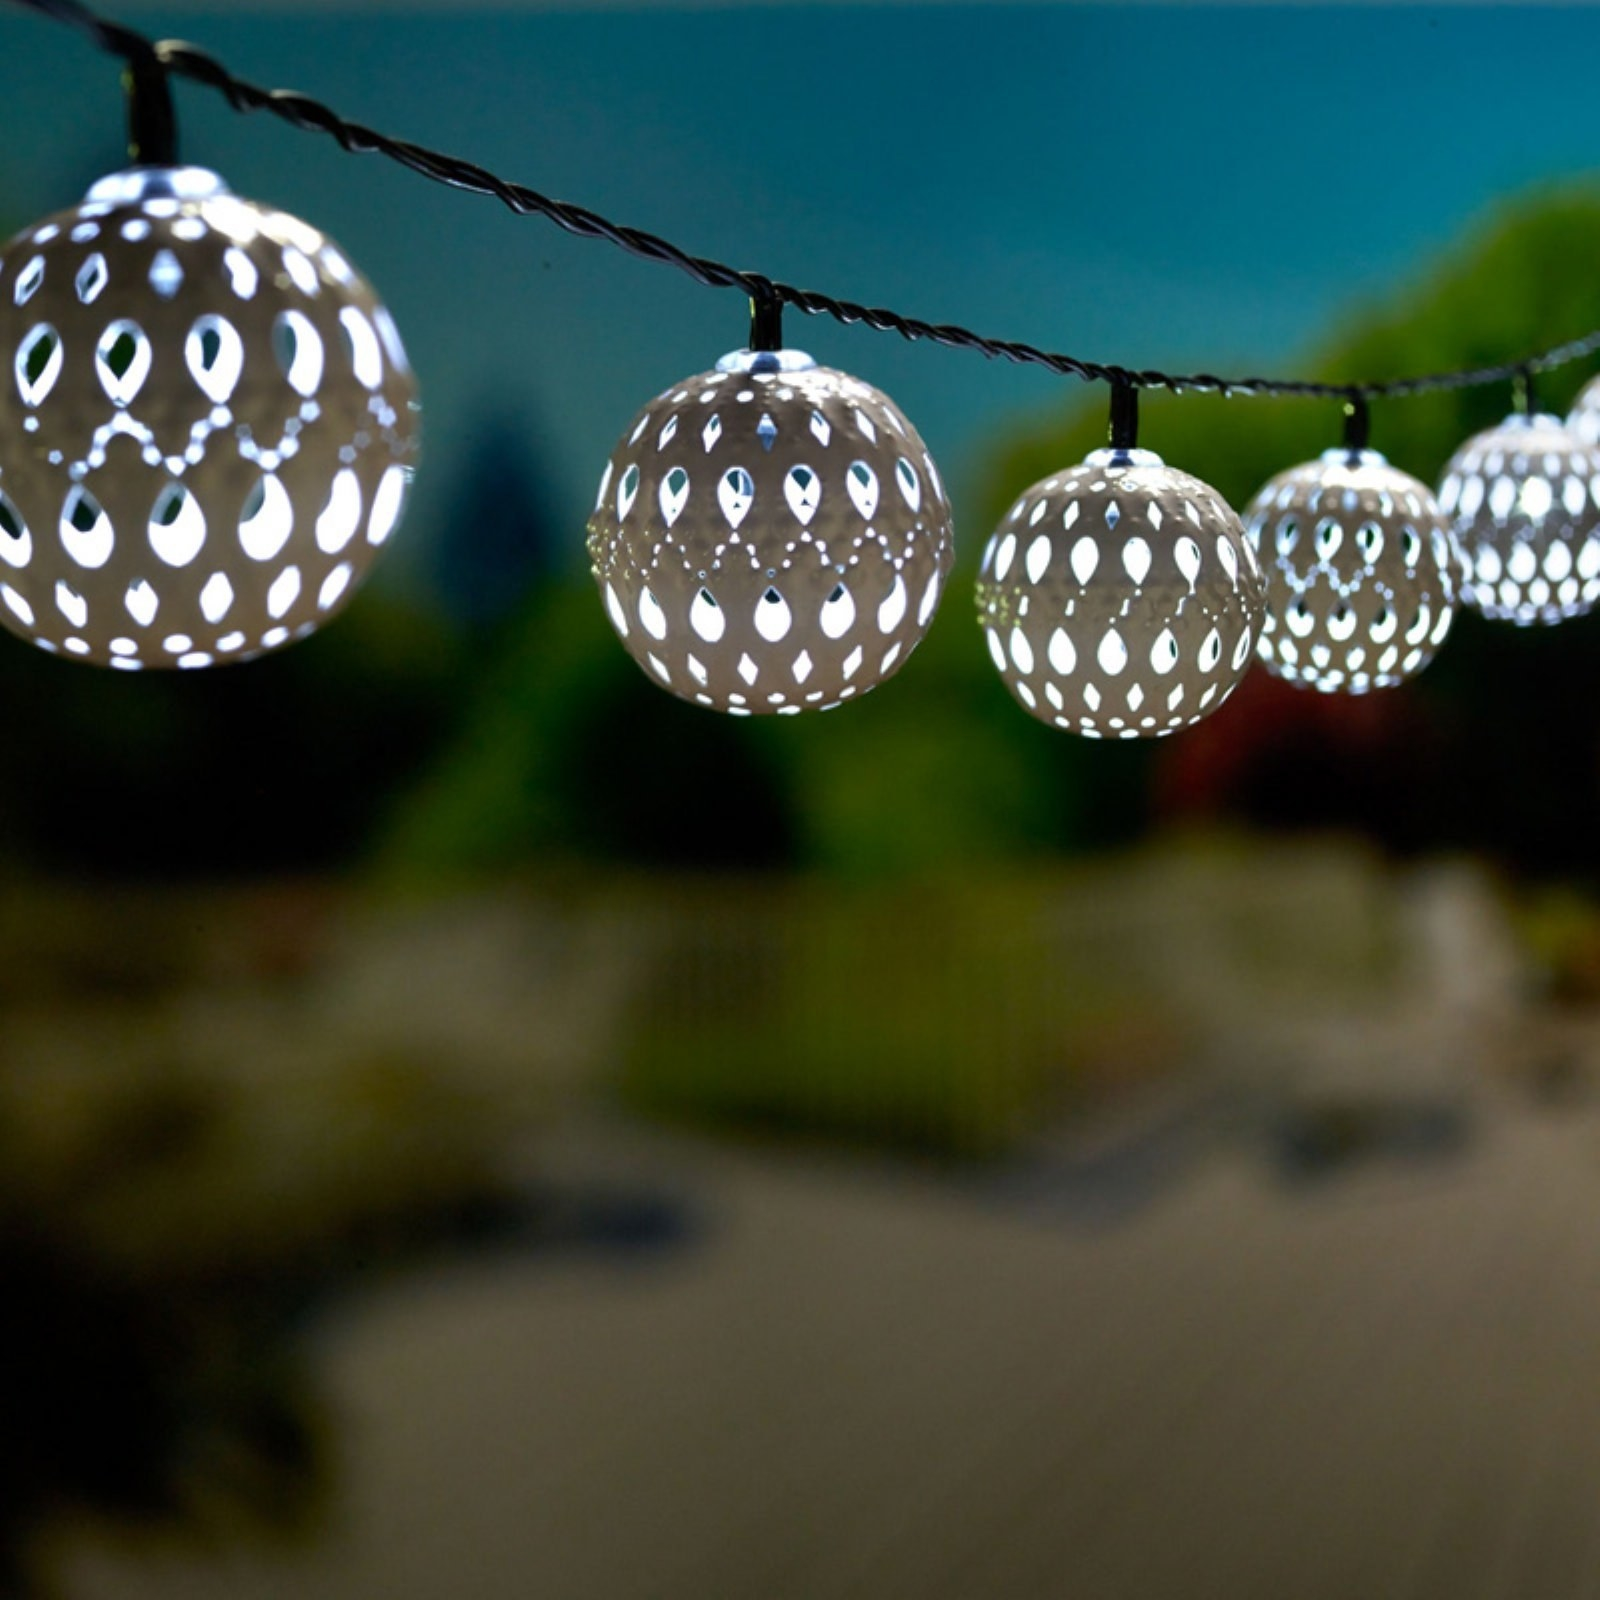 ball string lights with delicate designs on them